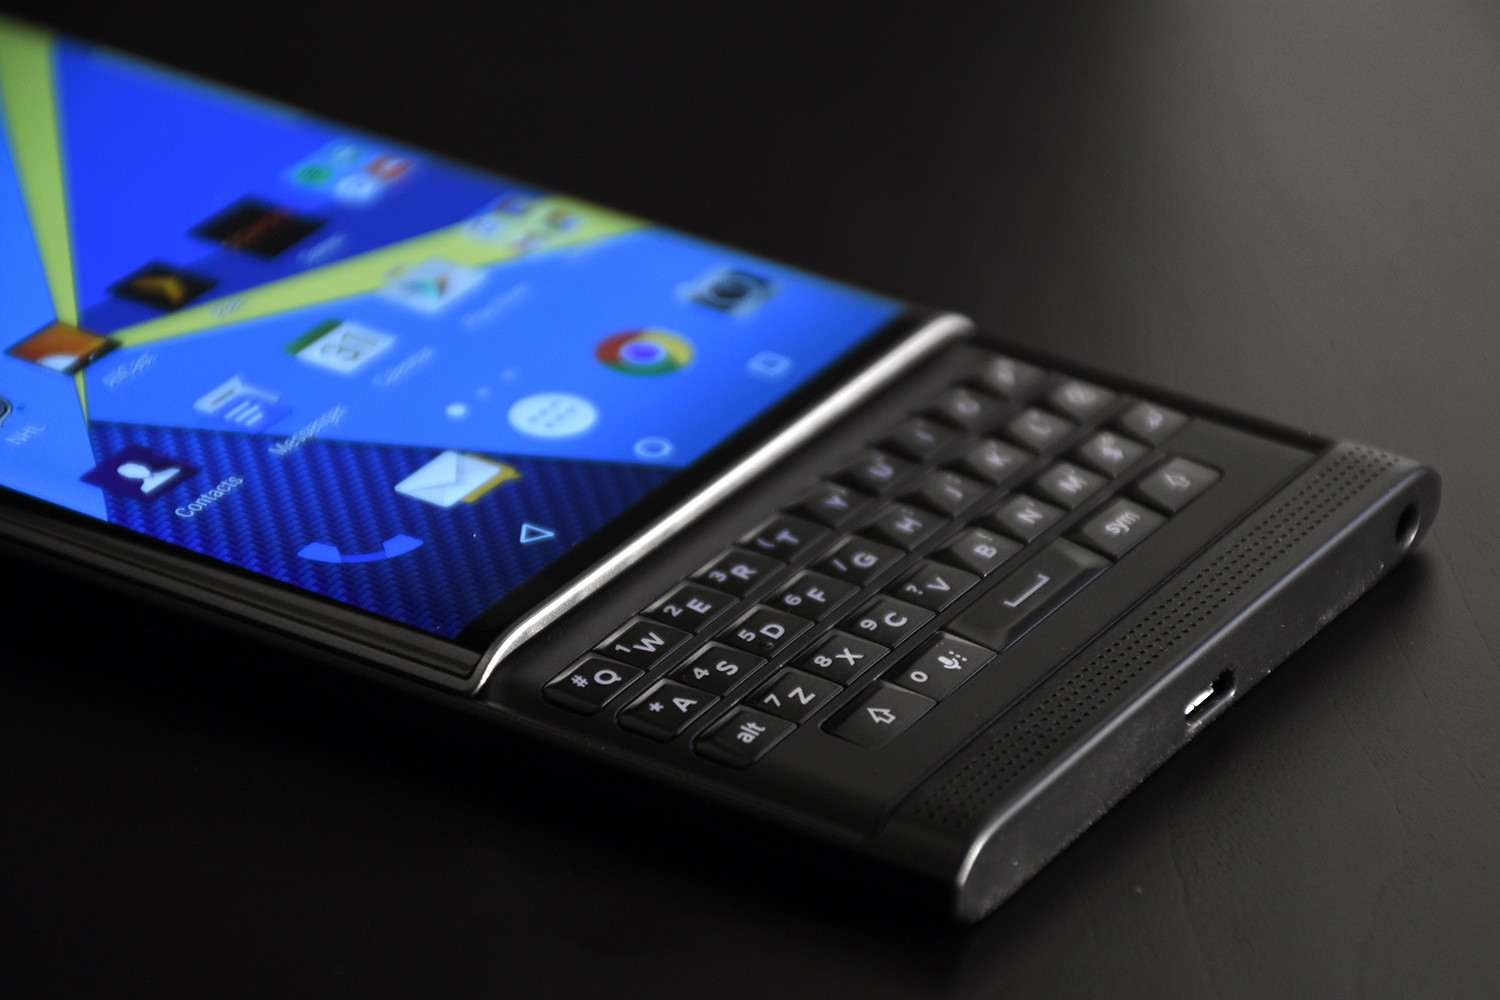 Disappointing sales may spur Blackberry's exit from smartphone hardware market